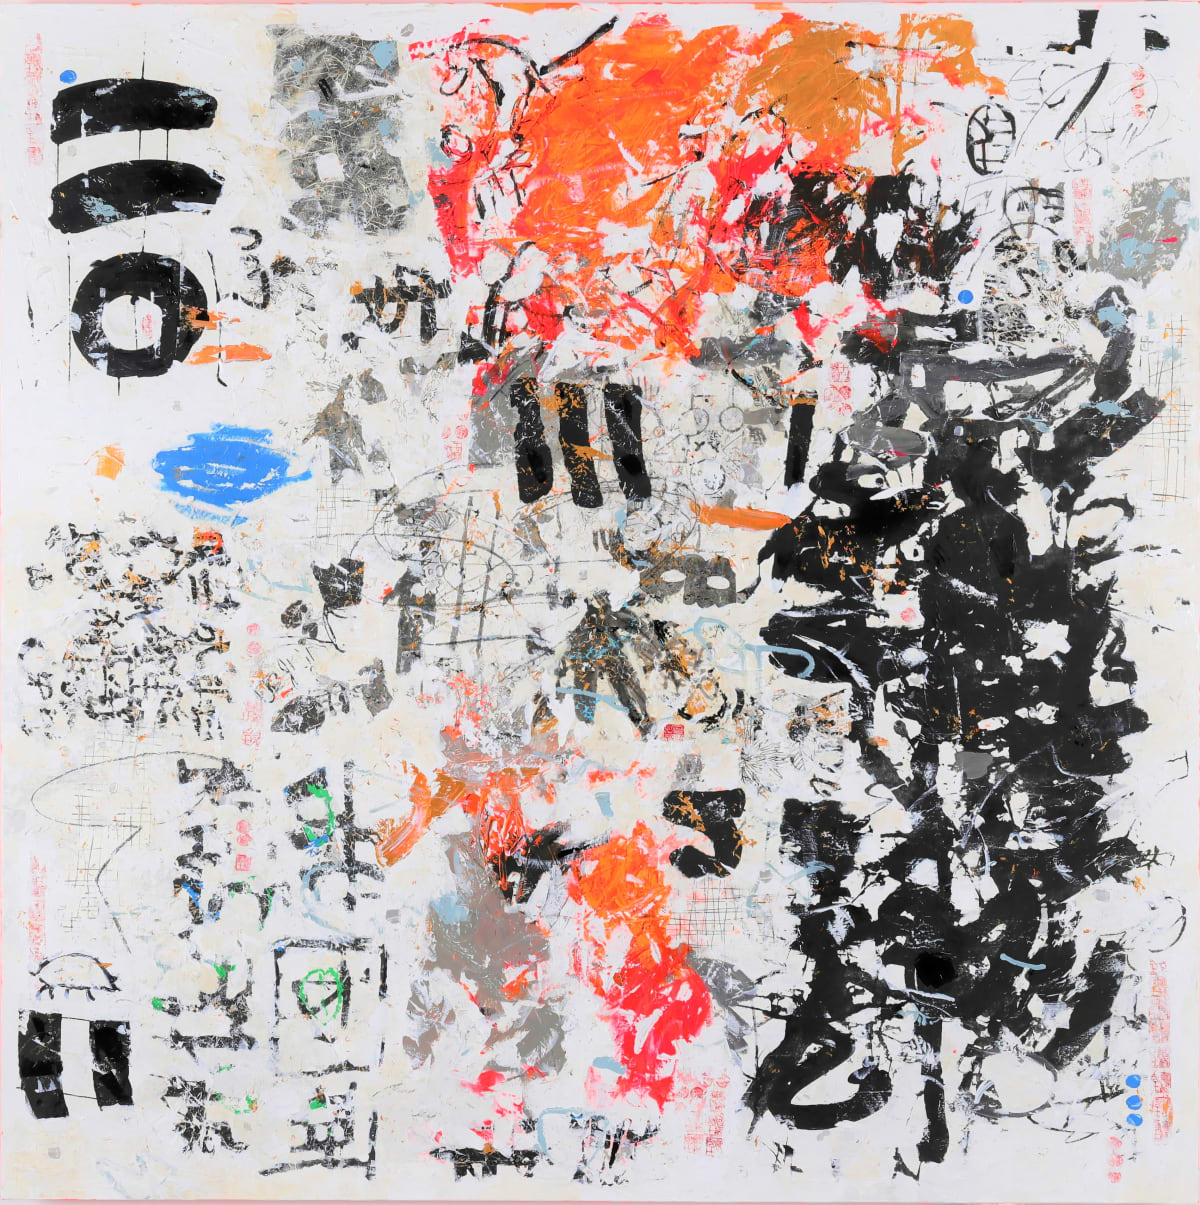 Canal Cheong Jagerroos, 'Orange New Hope II', 2021, rice paper, pigment, acrylic, and mixed media on canvas, 180 x 180 cm